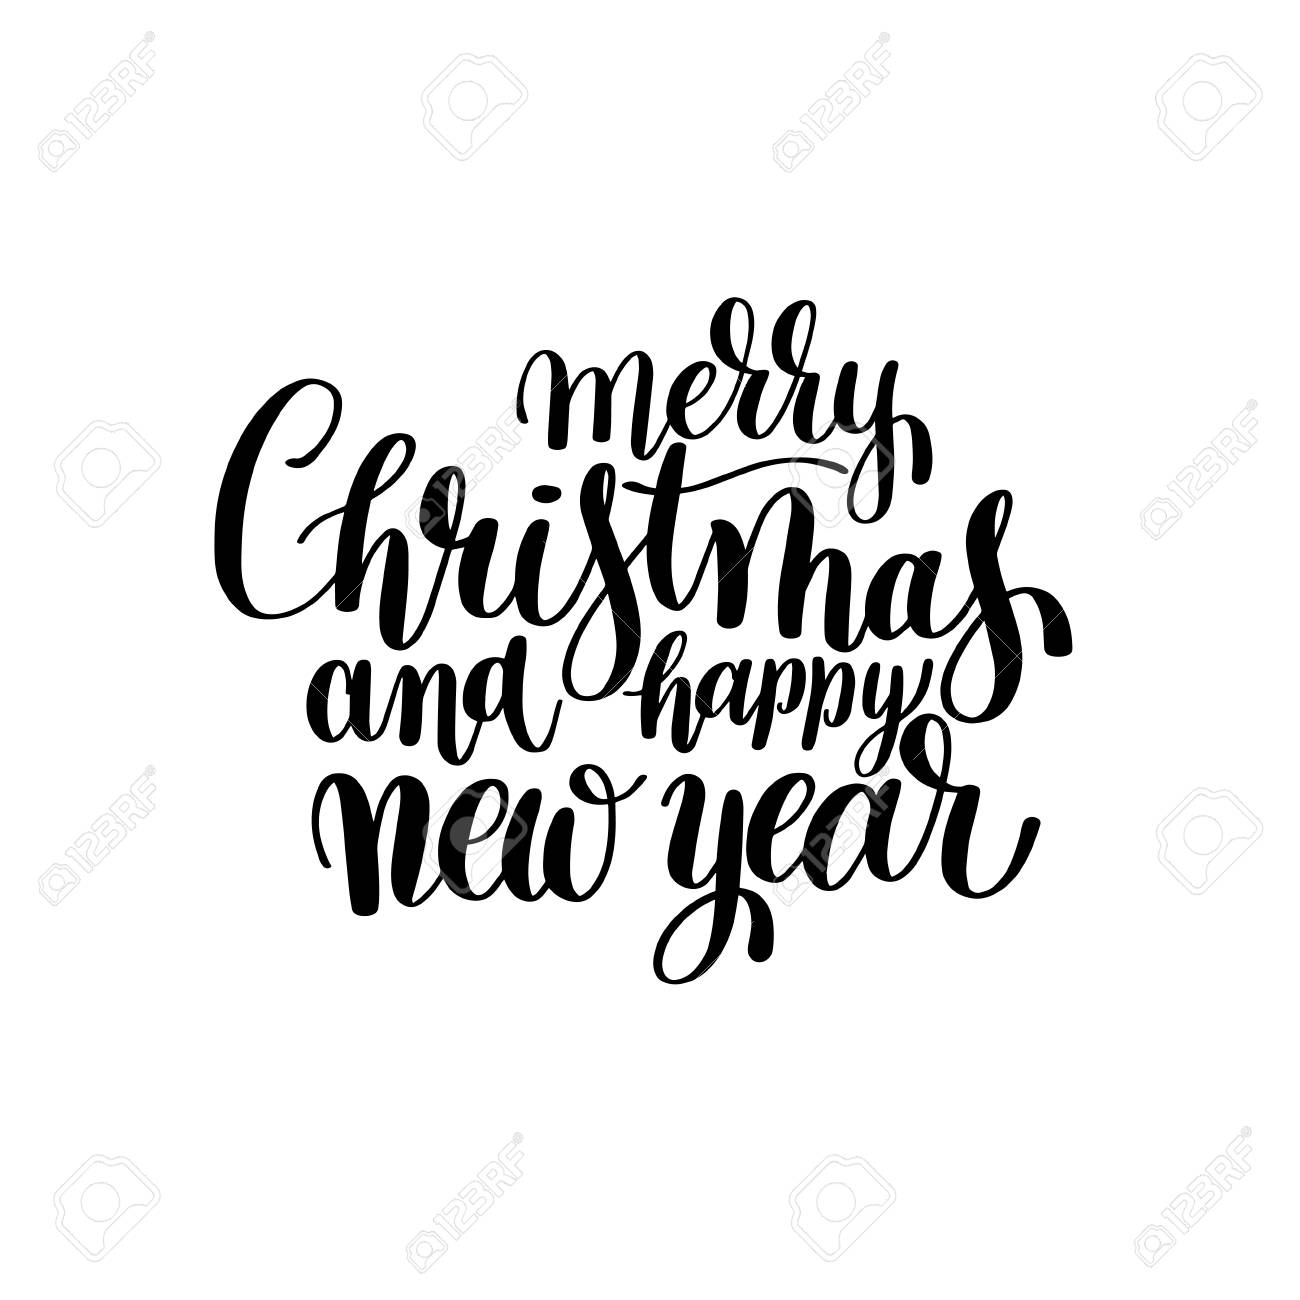 black and white merry christmas and happy new year calligraphic royalty free cliparts vectors and stock illustration image 67330225 123rf com